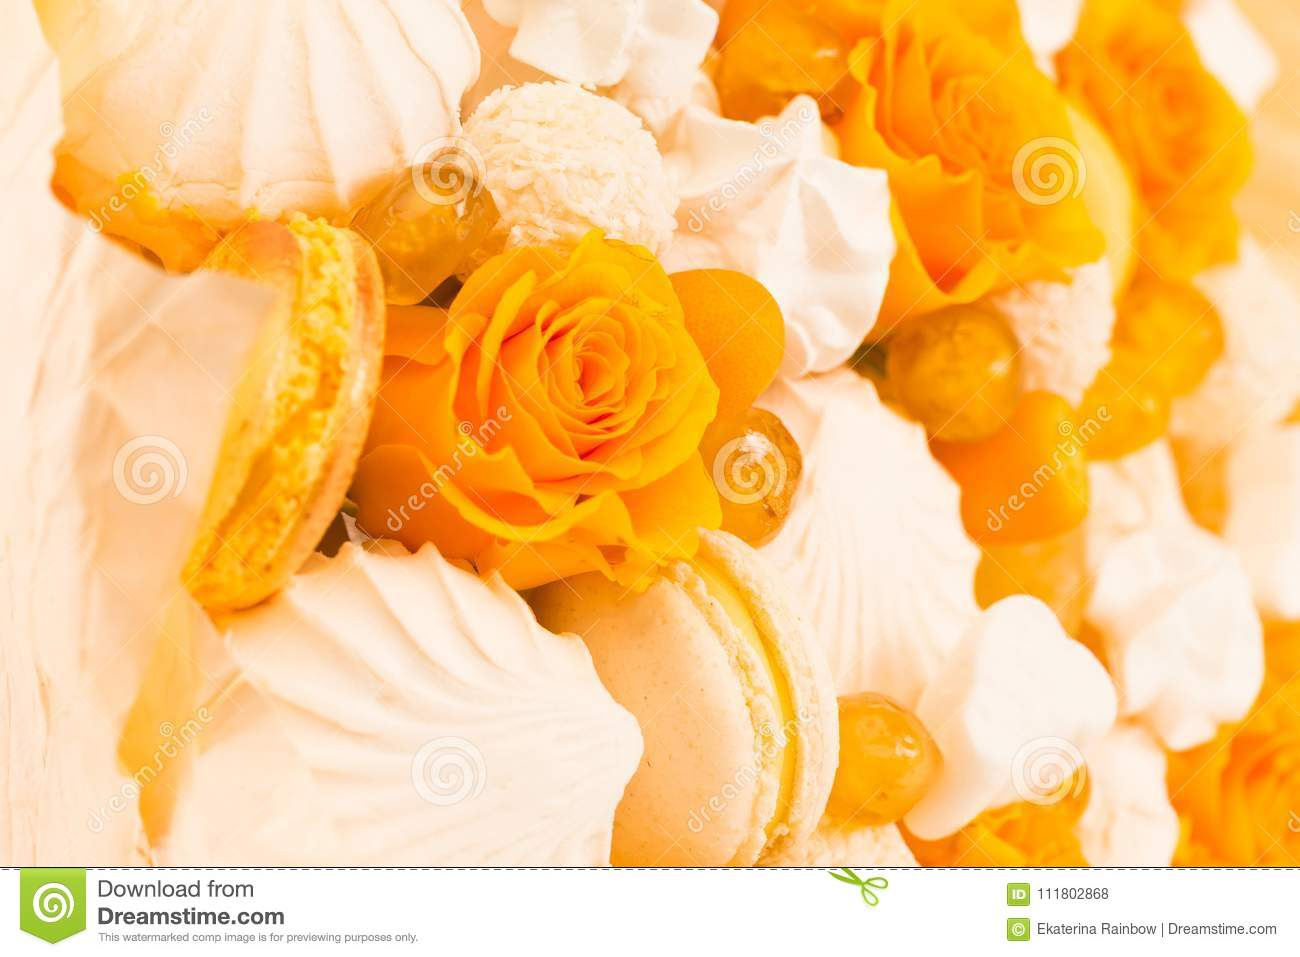 Flowers fruit bouquet white isolated yellow rose marshmallow download flowers fruit bouquet white isolated yellow rose marshmallow stock photo izmirmasajfo